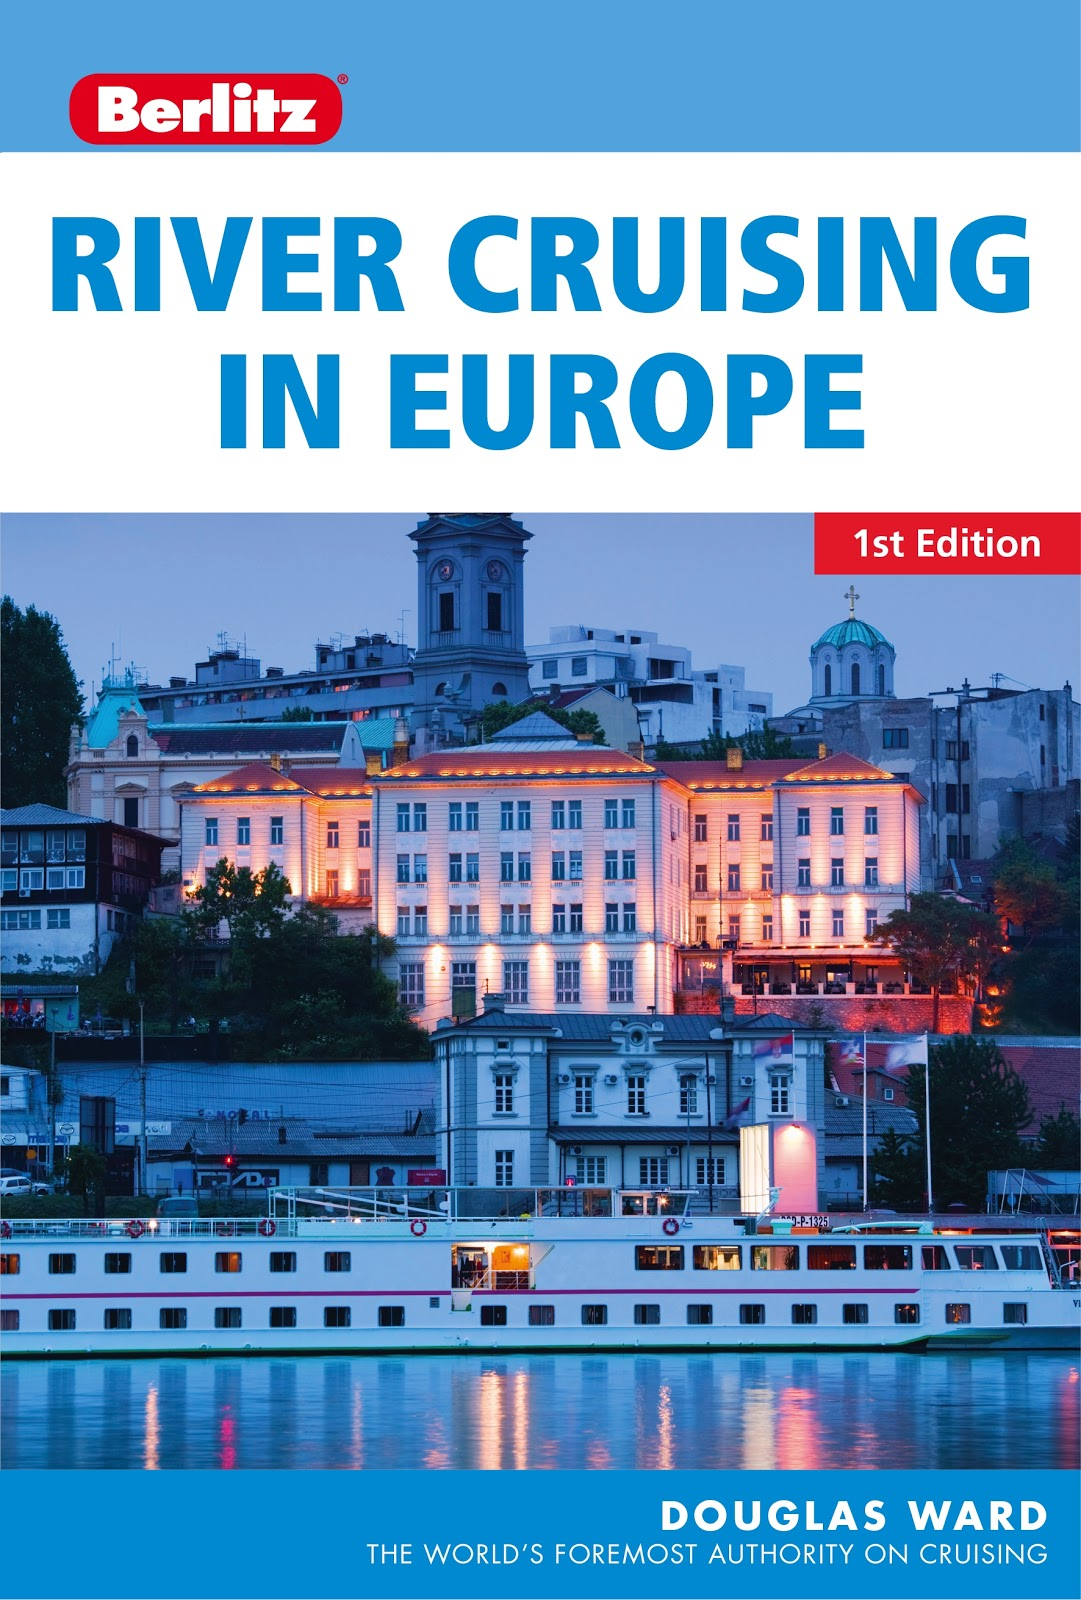 'River Cruising in Europe' debuts in US for first time. Photo: ©Berlitz. Unauthorized use is prohibited.